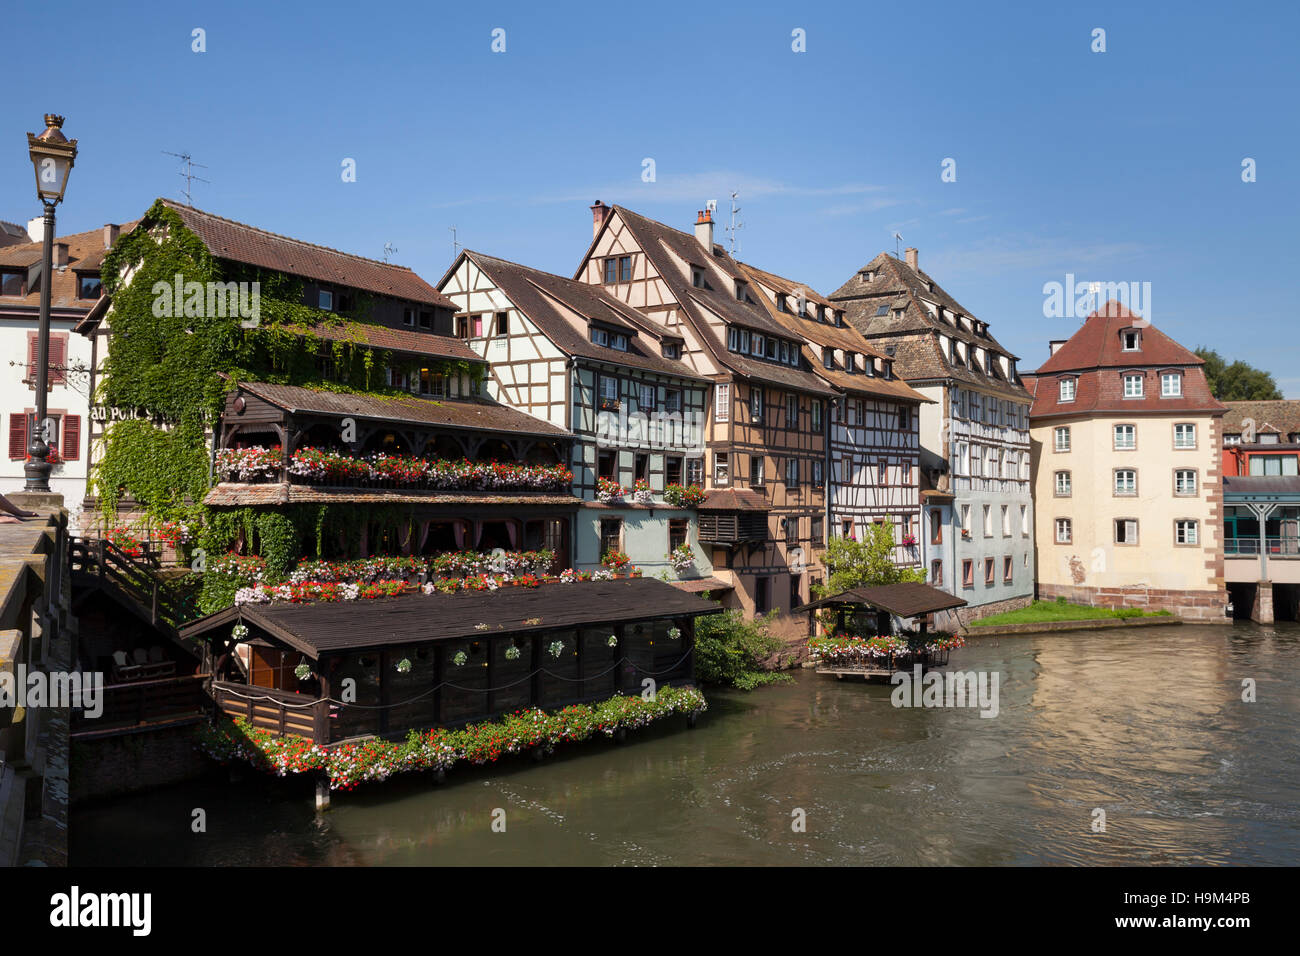 France, Strasbourg, Half timbered houses at Ill river, UNESCO World heritage - Stock Image